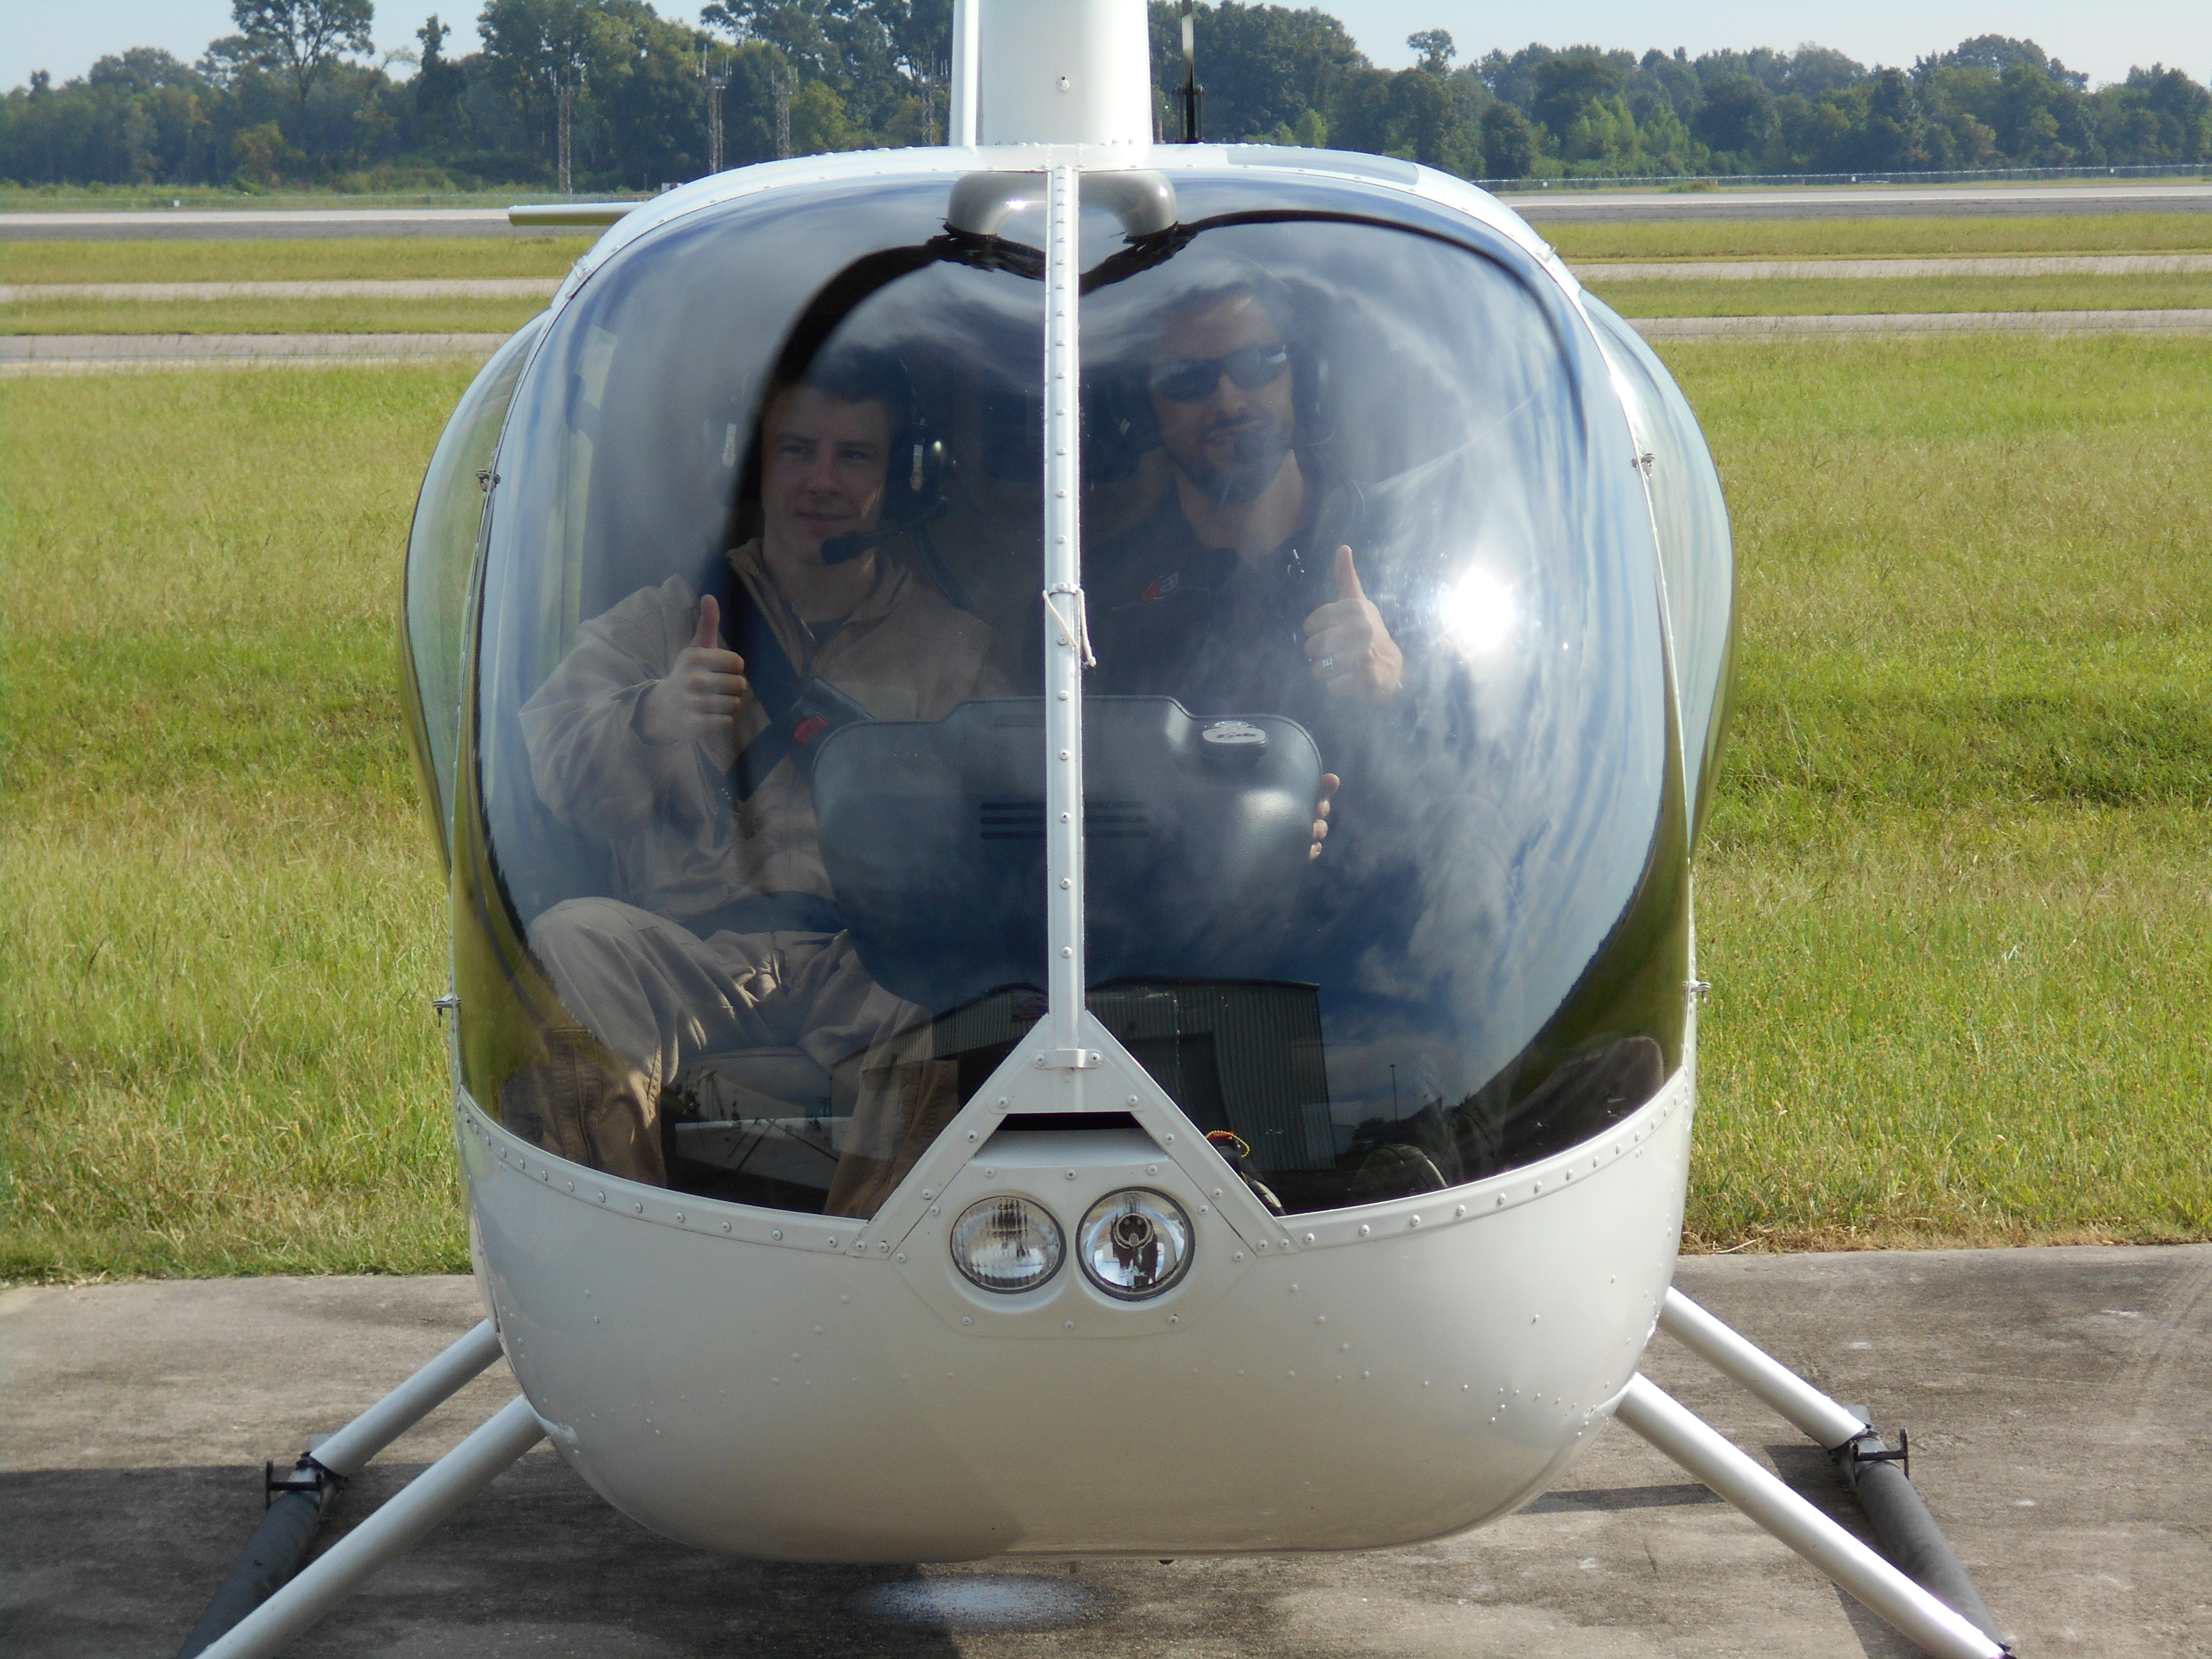 Veterans using Post 9-11 GI Bill benefits for helicopter flight training